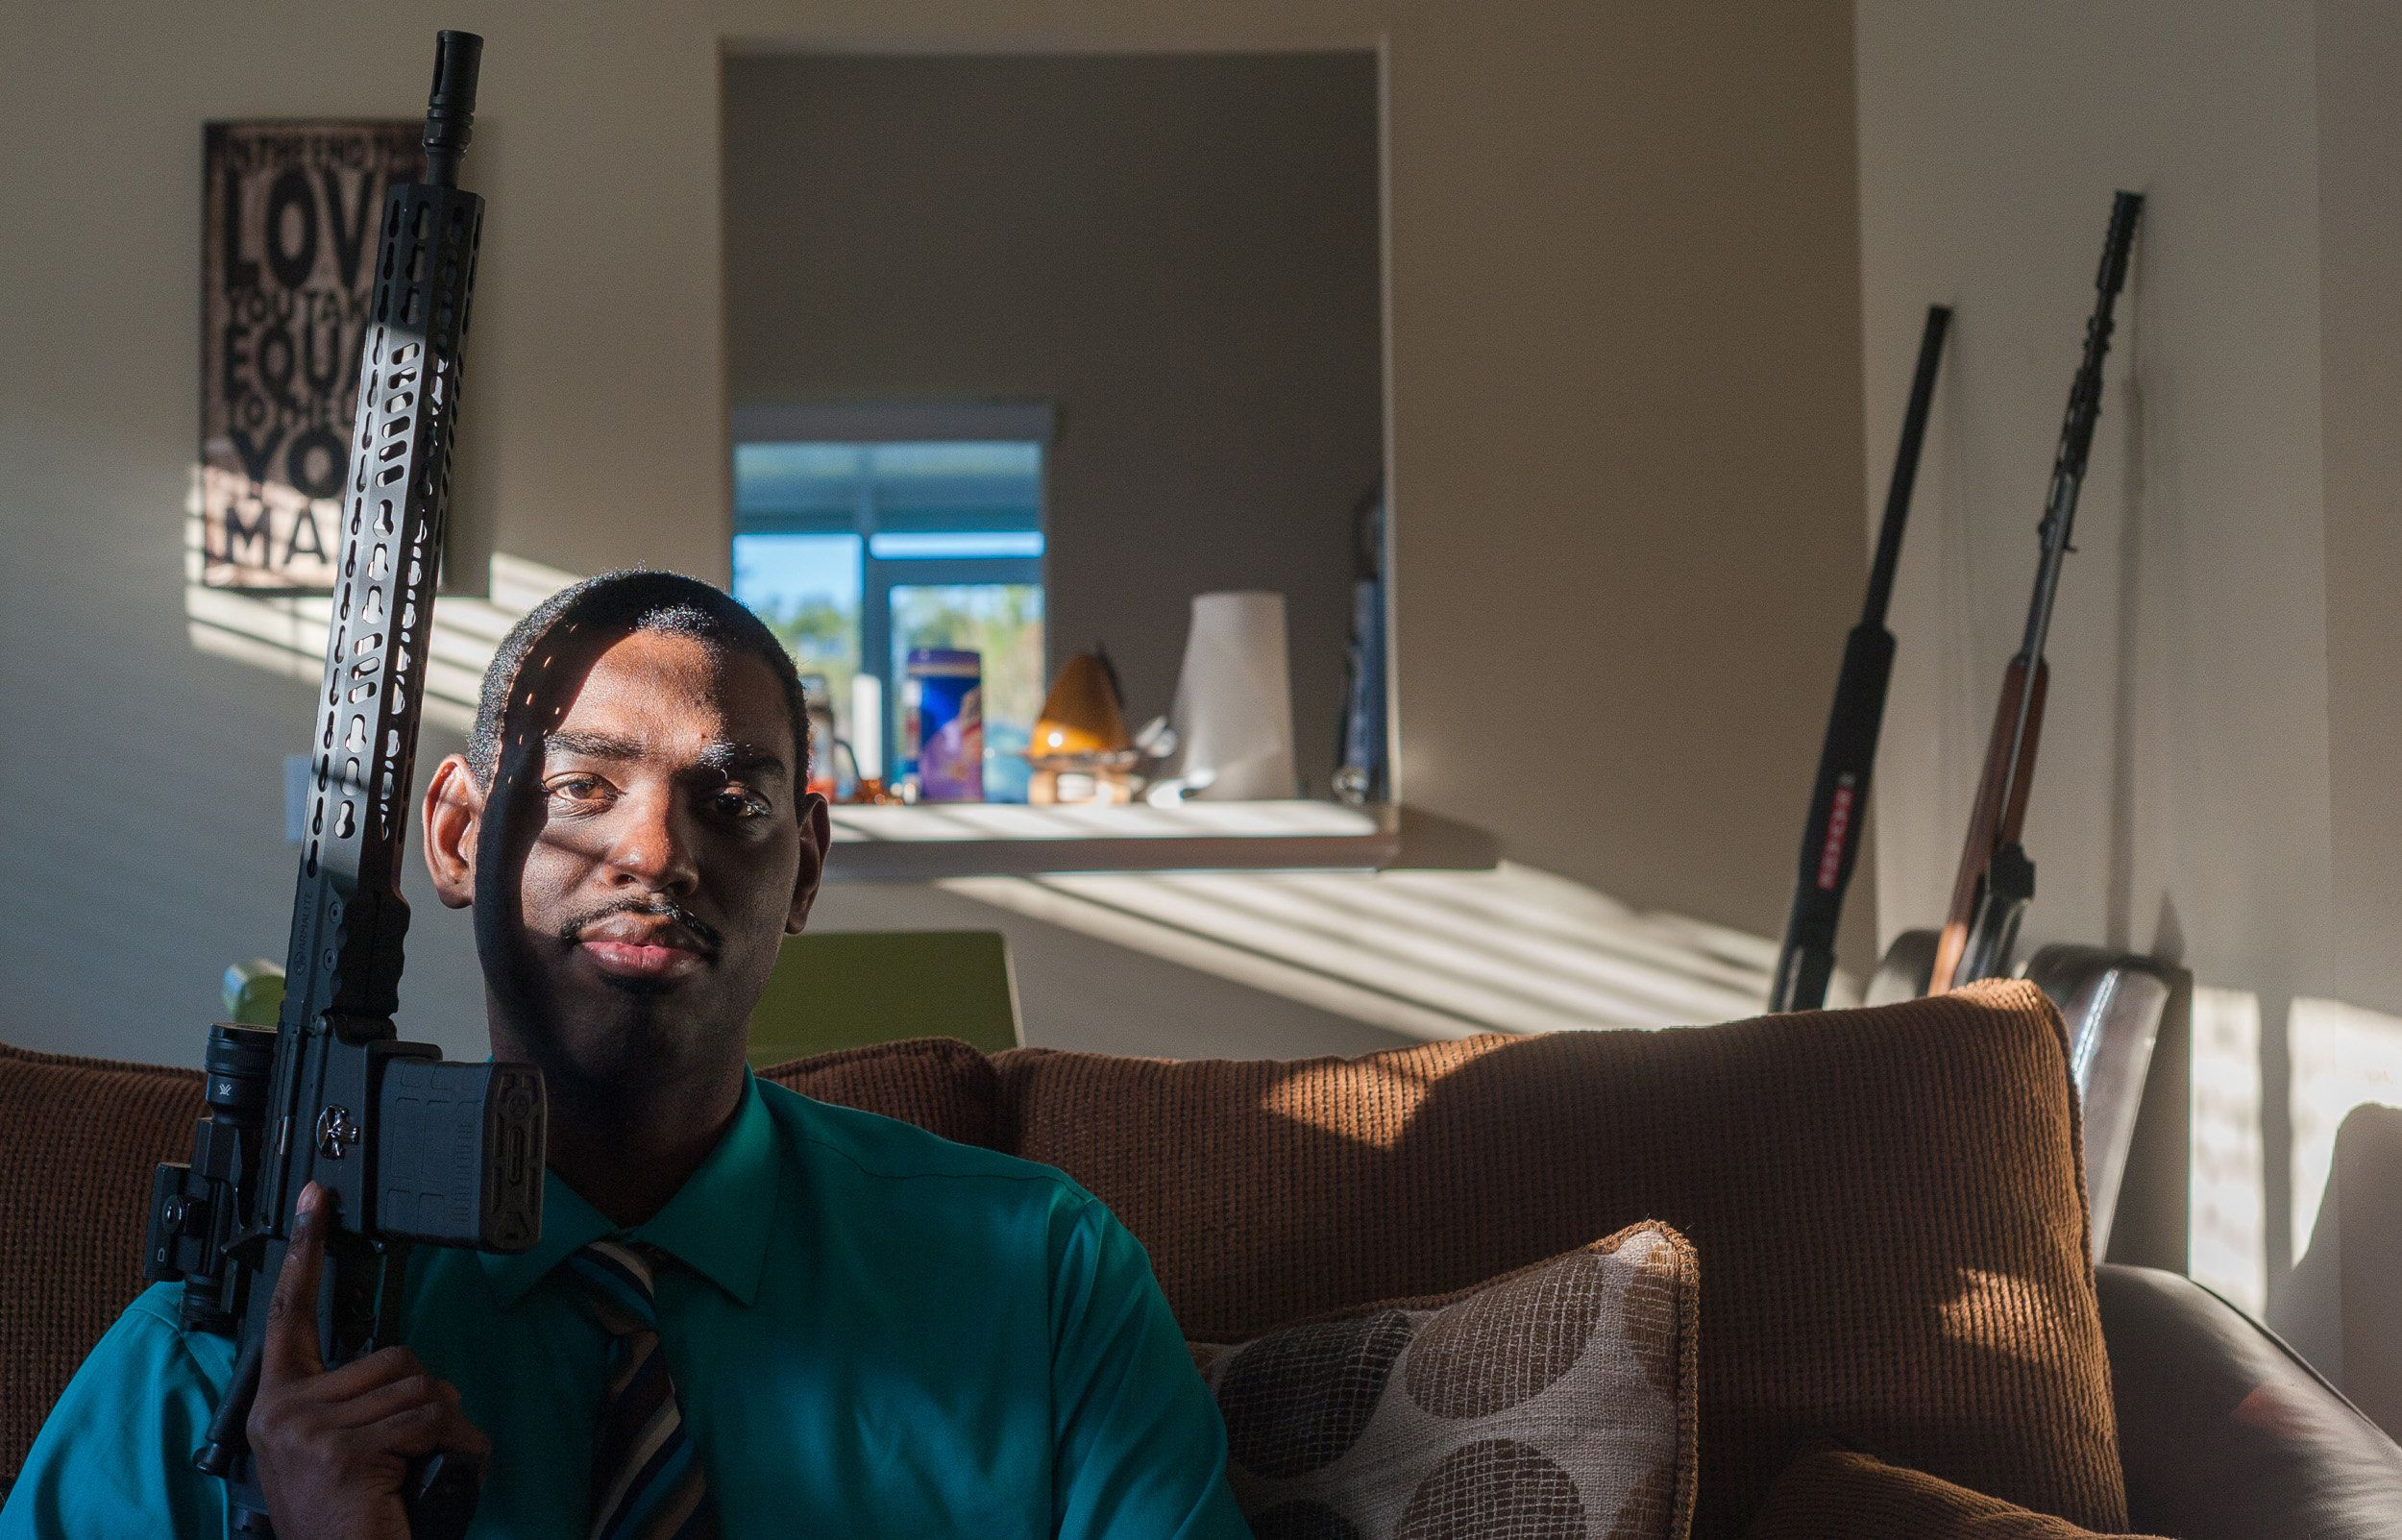 Carlton LeFlore poses with an Armalite AR-10 rifle at his home in Orlando, Florida.